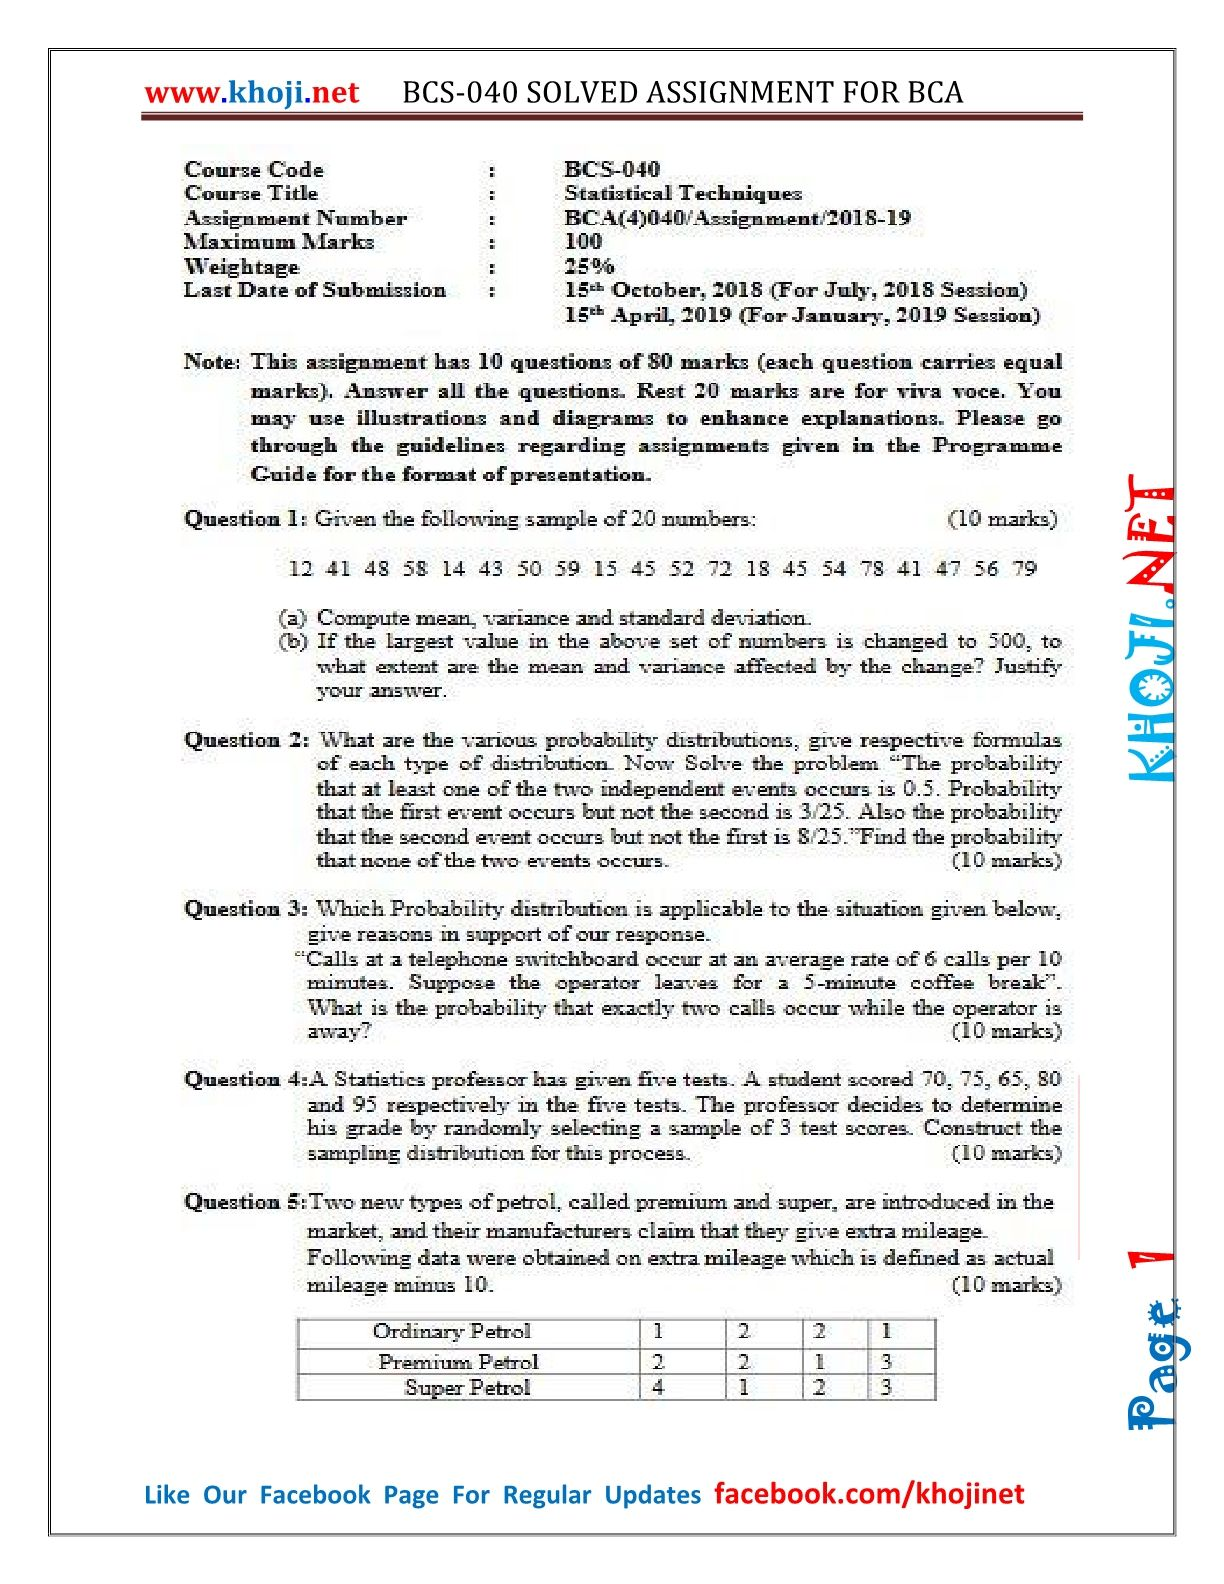 BCS-040 Solved Assignment For IGNOU BCA 2018-2019 in PDF